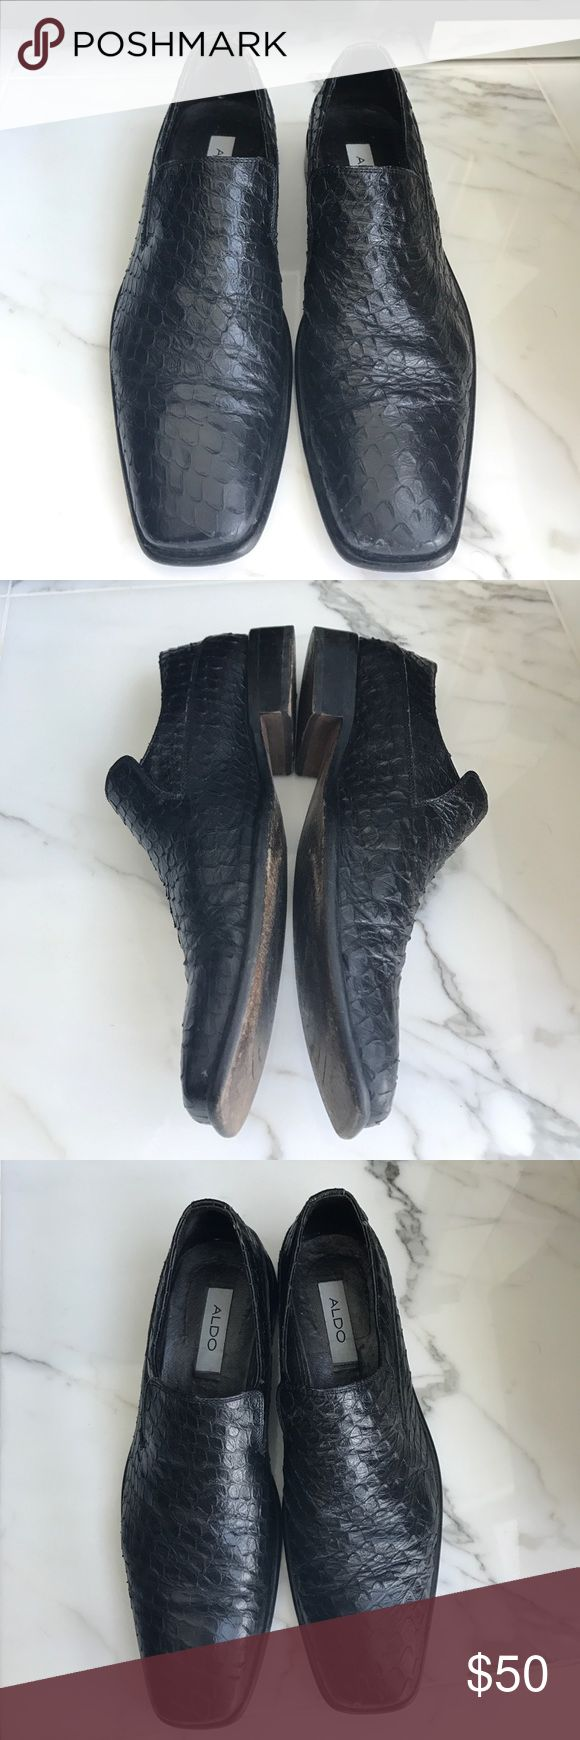 Aldo Black Leather Loafer Slip On Dress Shoes Good condition. Gator design. These shoes were used minimally with additional inserted soles so inside is clean. Vero Cuoio stamped Italian leather. European size 43. Aldo Shoes Loafers & Slip-Ons